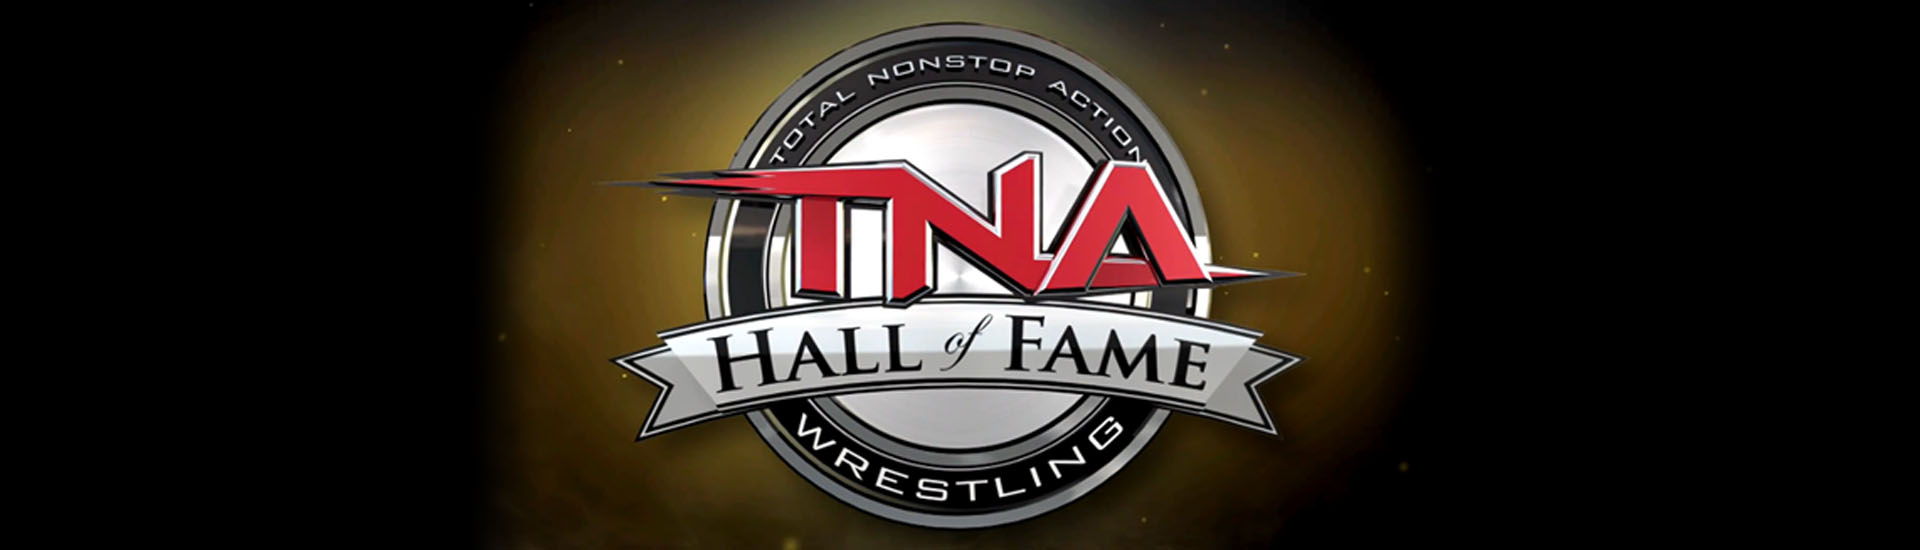 TNA Hall of Fame logo